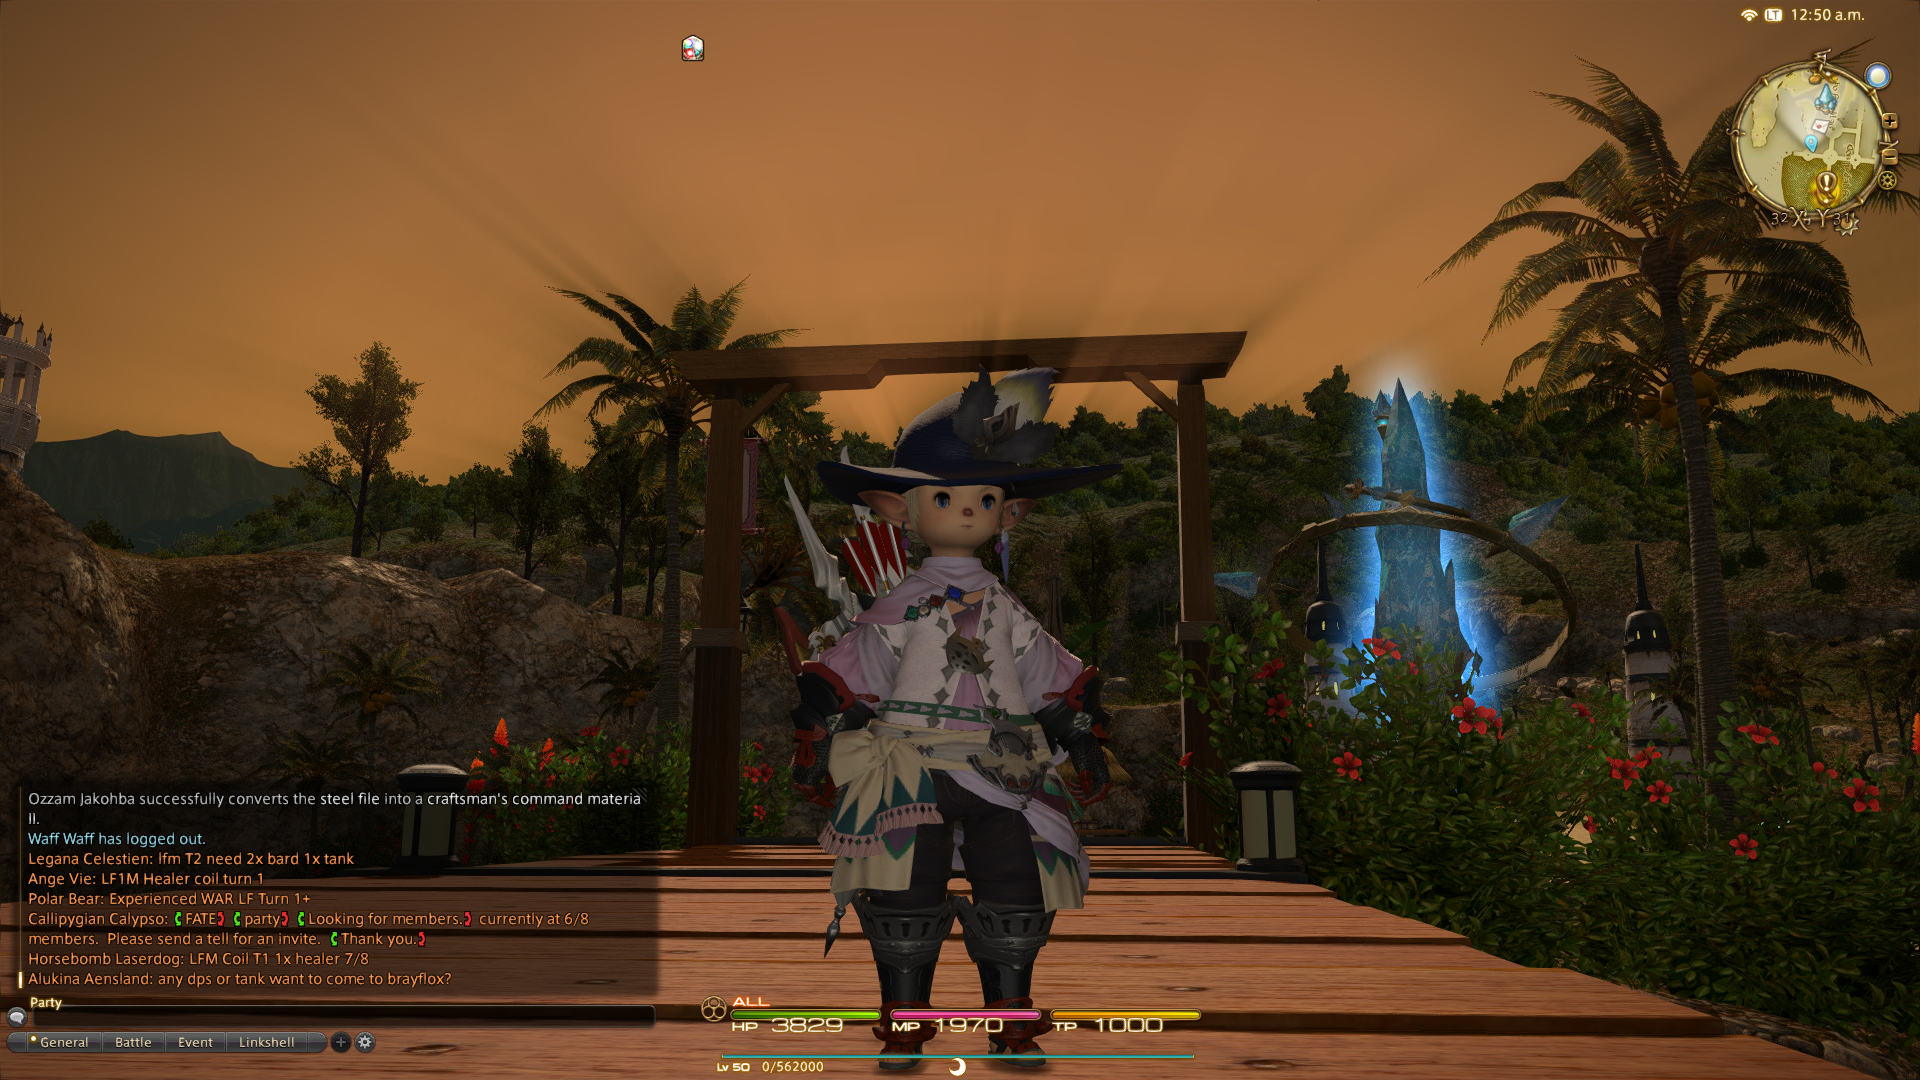 judah r ffxiv sweetfx game little been while configuration recommendations have anyone that quality there phases beta greetings during some talk improve graphics called about something